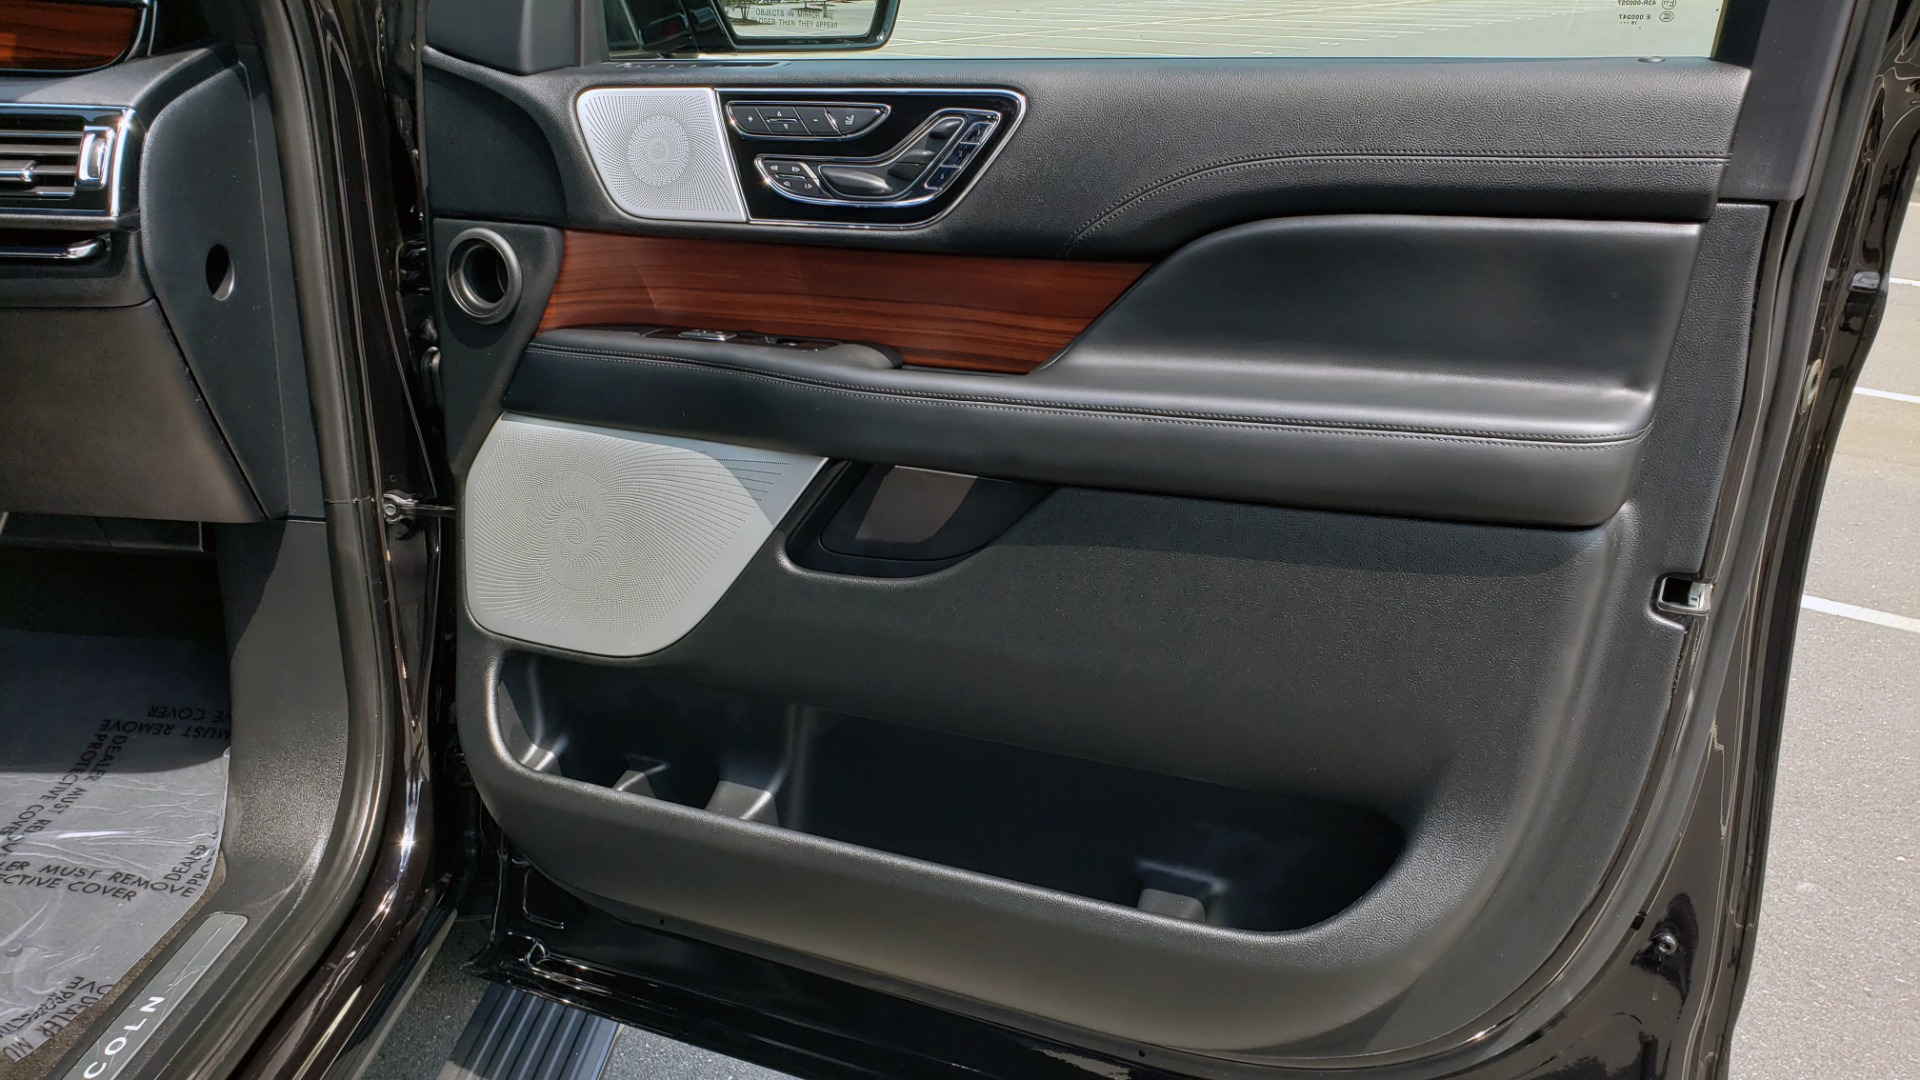 Used 2019 Lincoln NAVIGATOR RESERVE 4X4 / NAV / PANO-ROOF / REVEL ULTIMA AUDIO / 3-ROW / REARVIEW for sale $74,795 at Formula Imports in Charlotte NC 28227 73